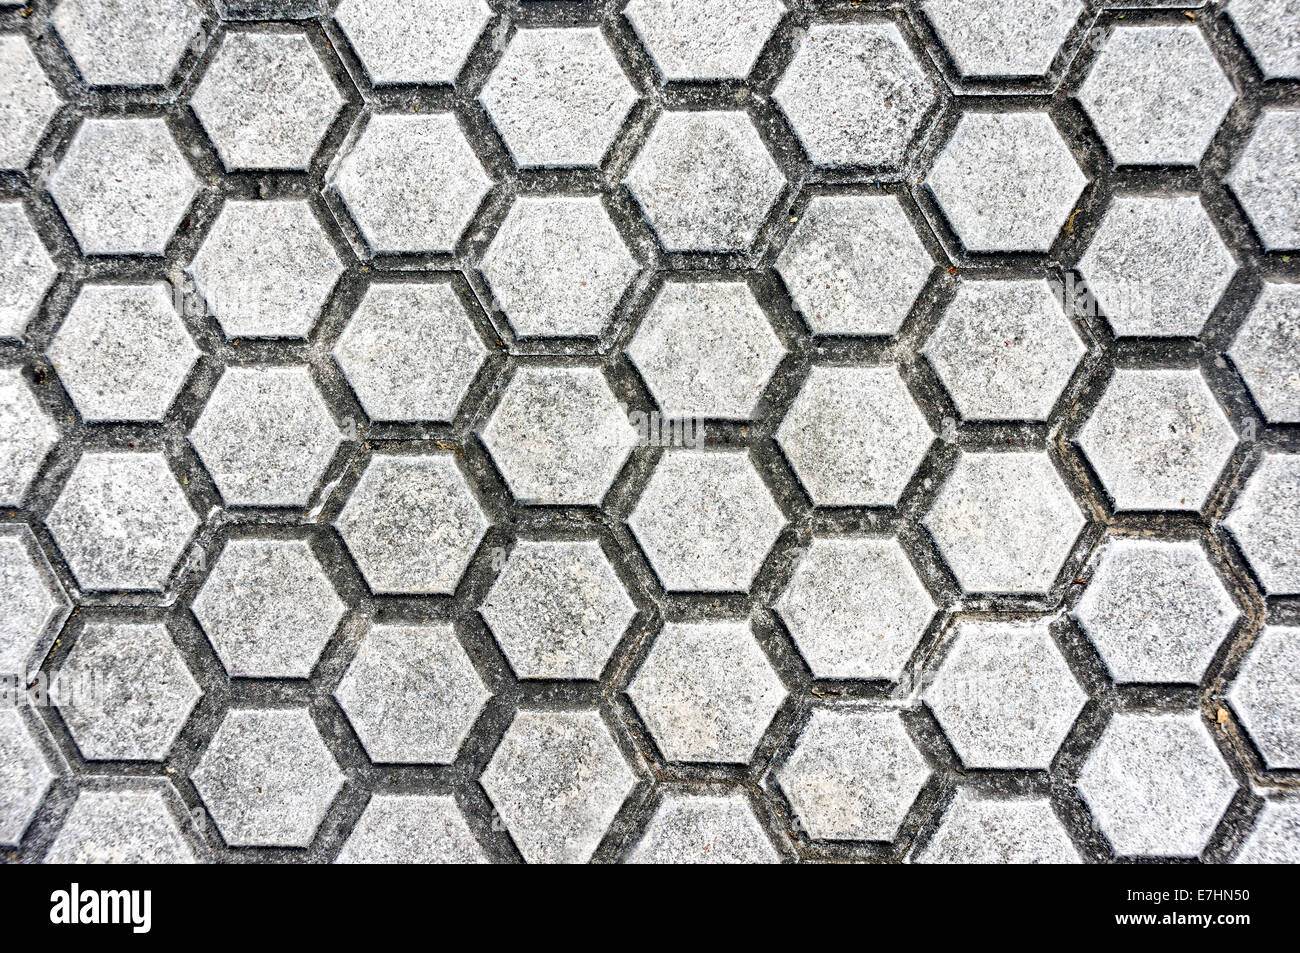 background of floor with paving stones and hexagon shapes - Stock Image